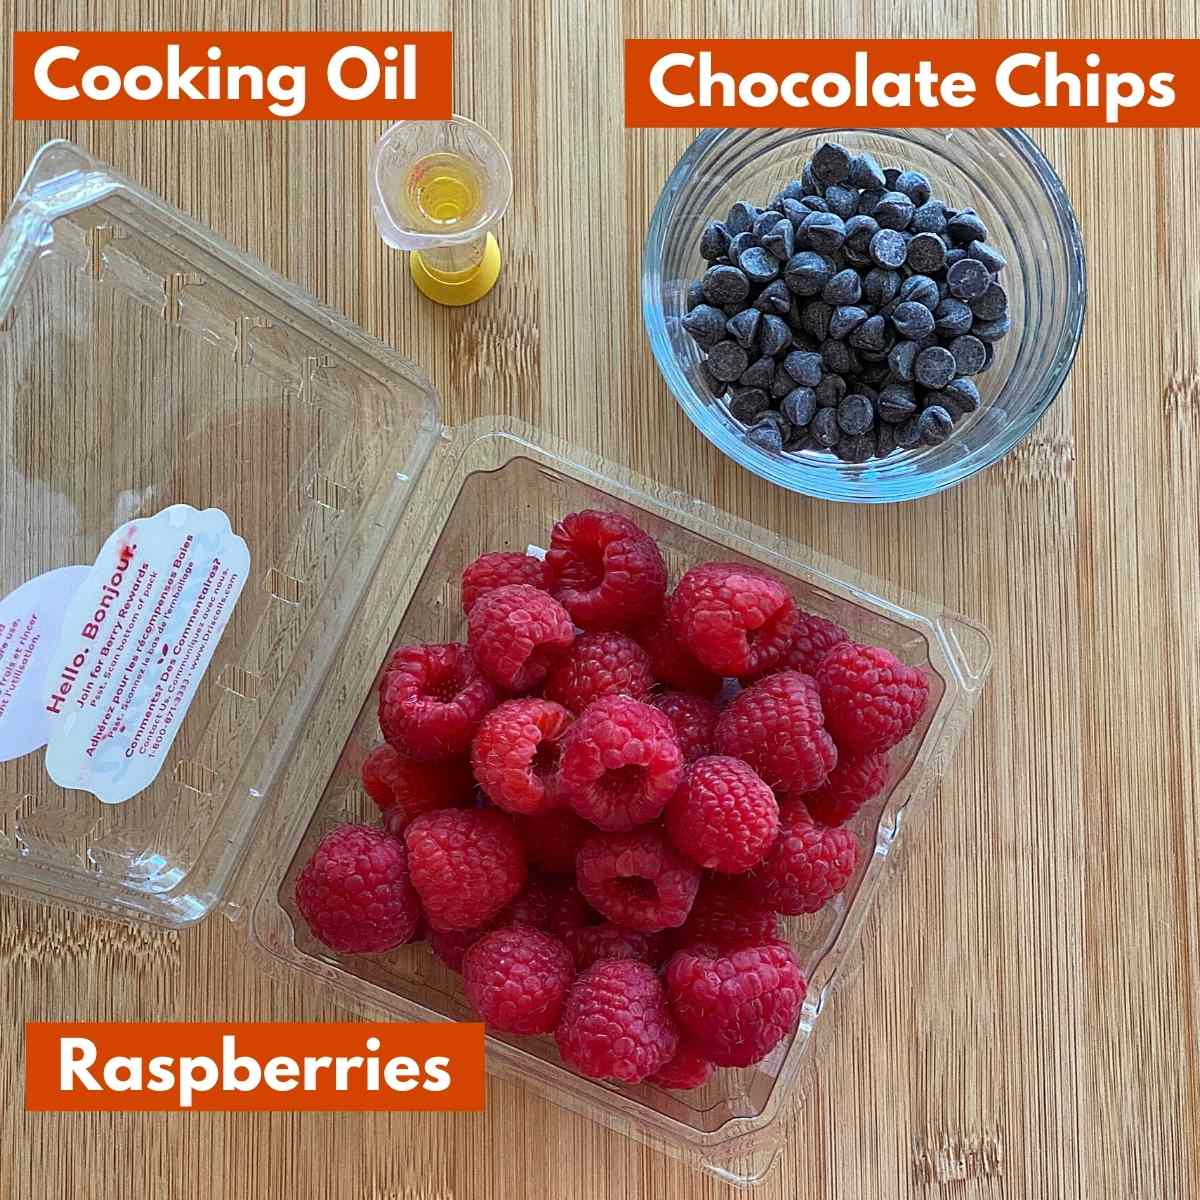 Graphic with pictures of ingredients to make the recipe: raspberries, sugar-free dark chocolate chips, oil.